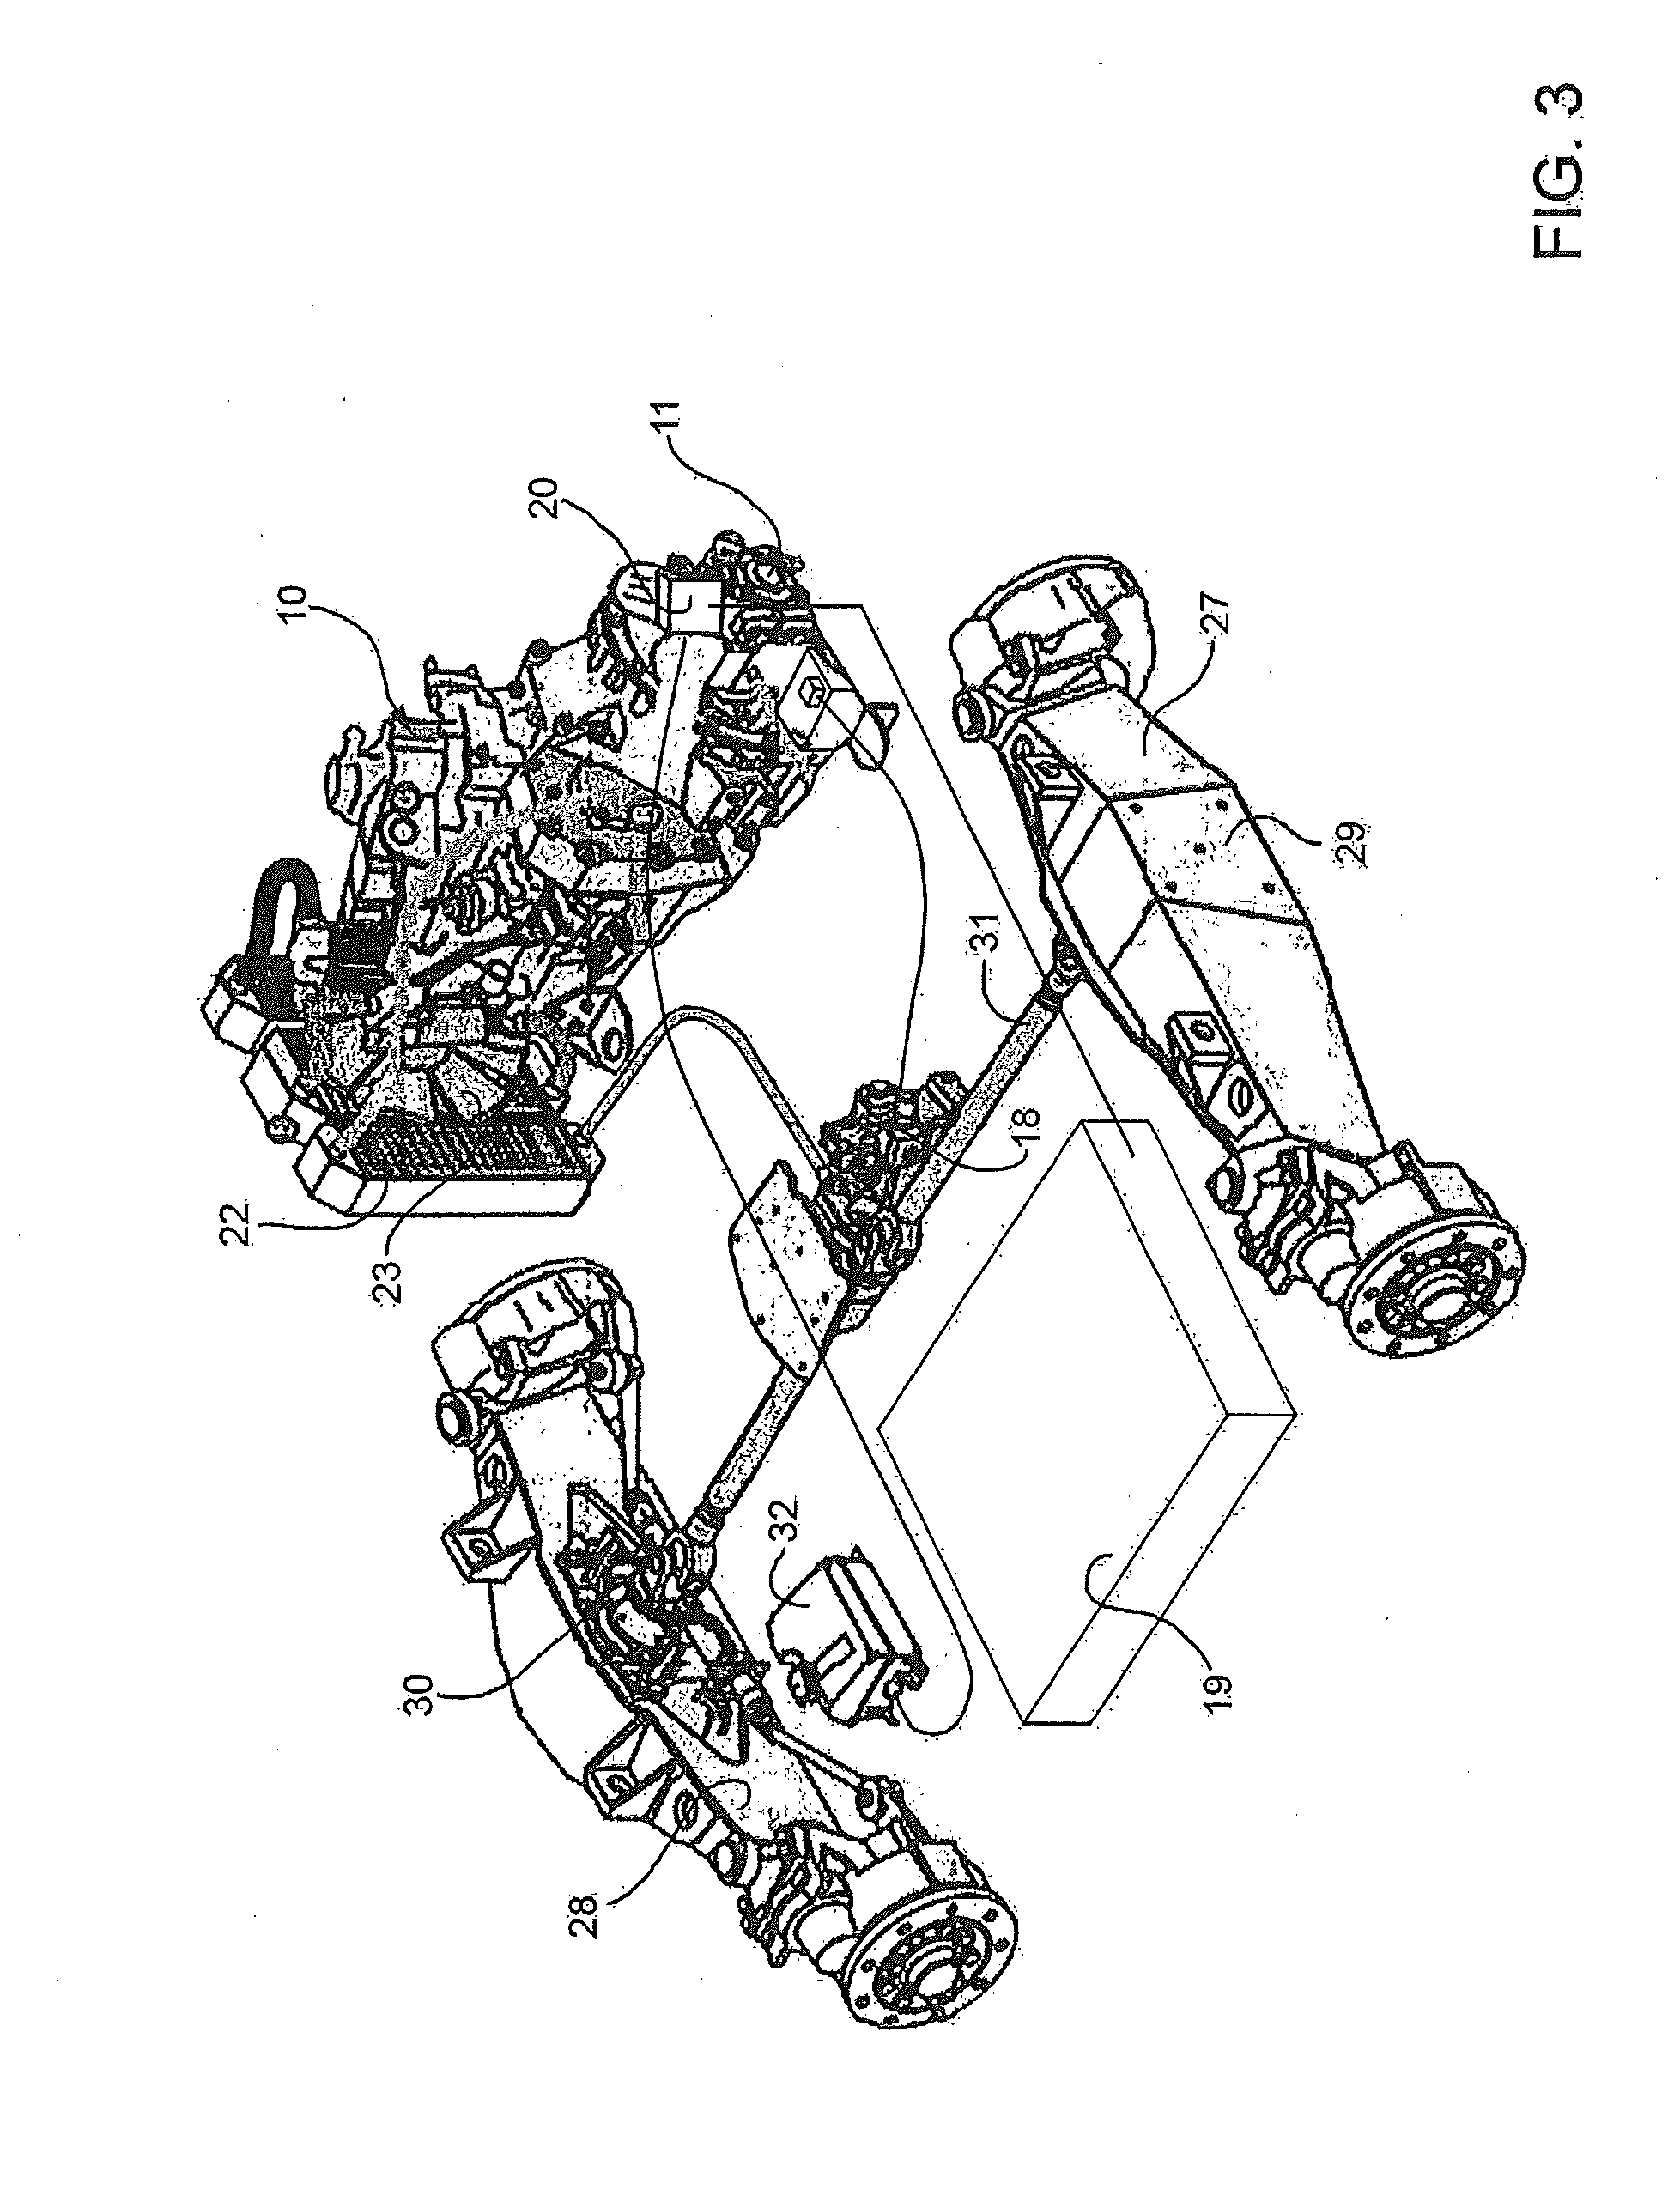 US20130230376A1 20130905 D00003 patent us20130230376 electrohydraulic hybrid lifting vehicle dyna jack model m 3551 wiring diagram at mifinder.co